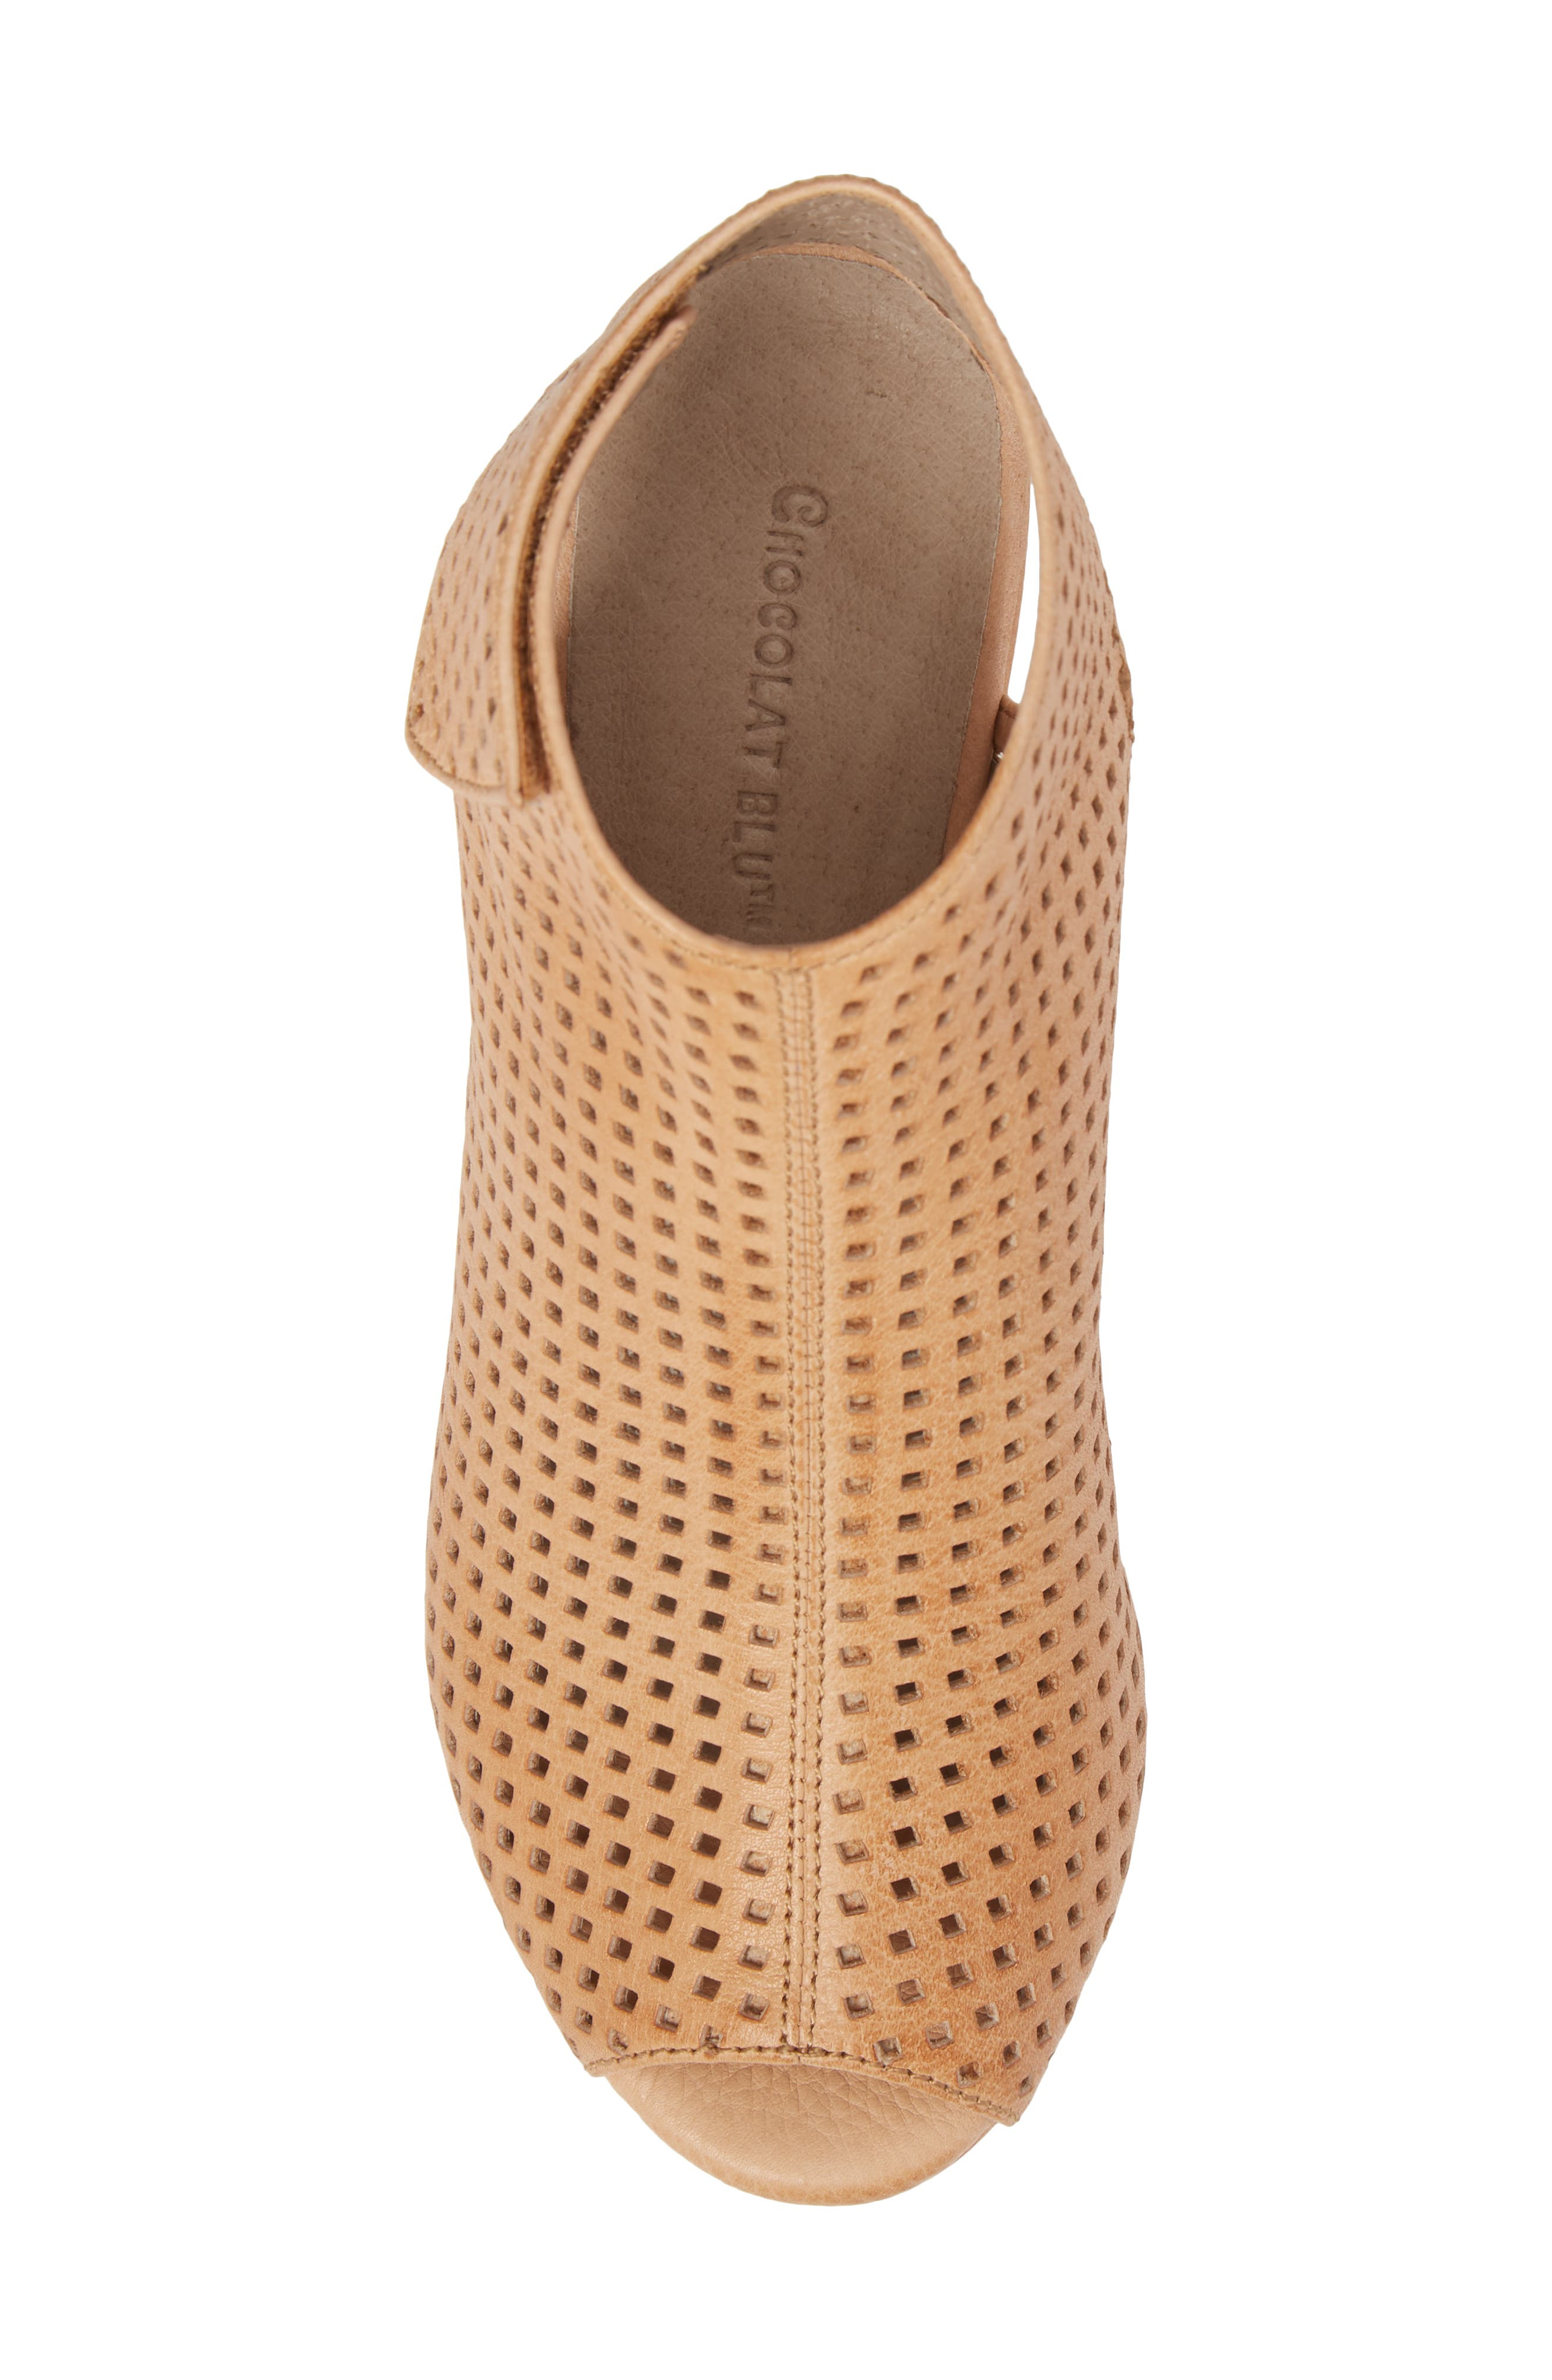 Wing Perforated Platform Wedge,                             Alternate thumbnail 5, color,                             200